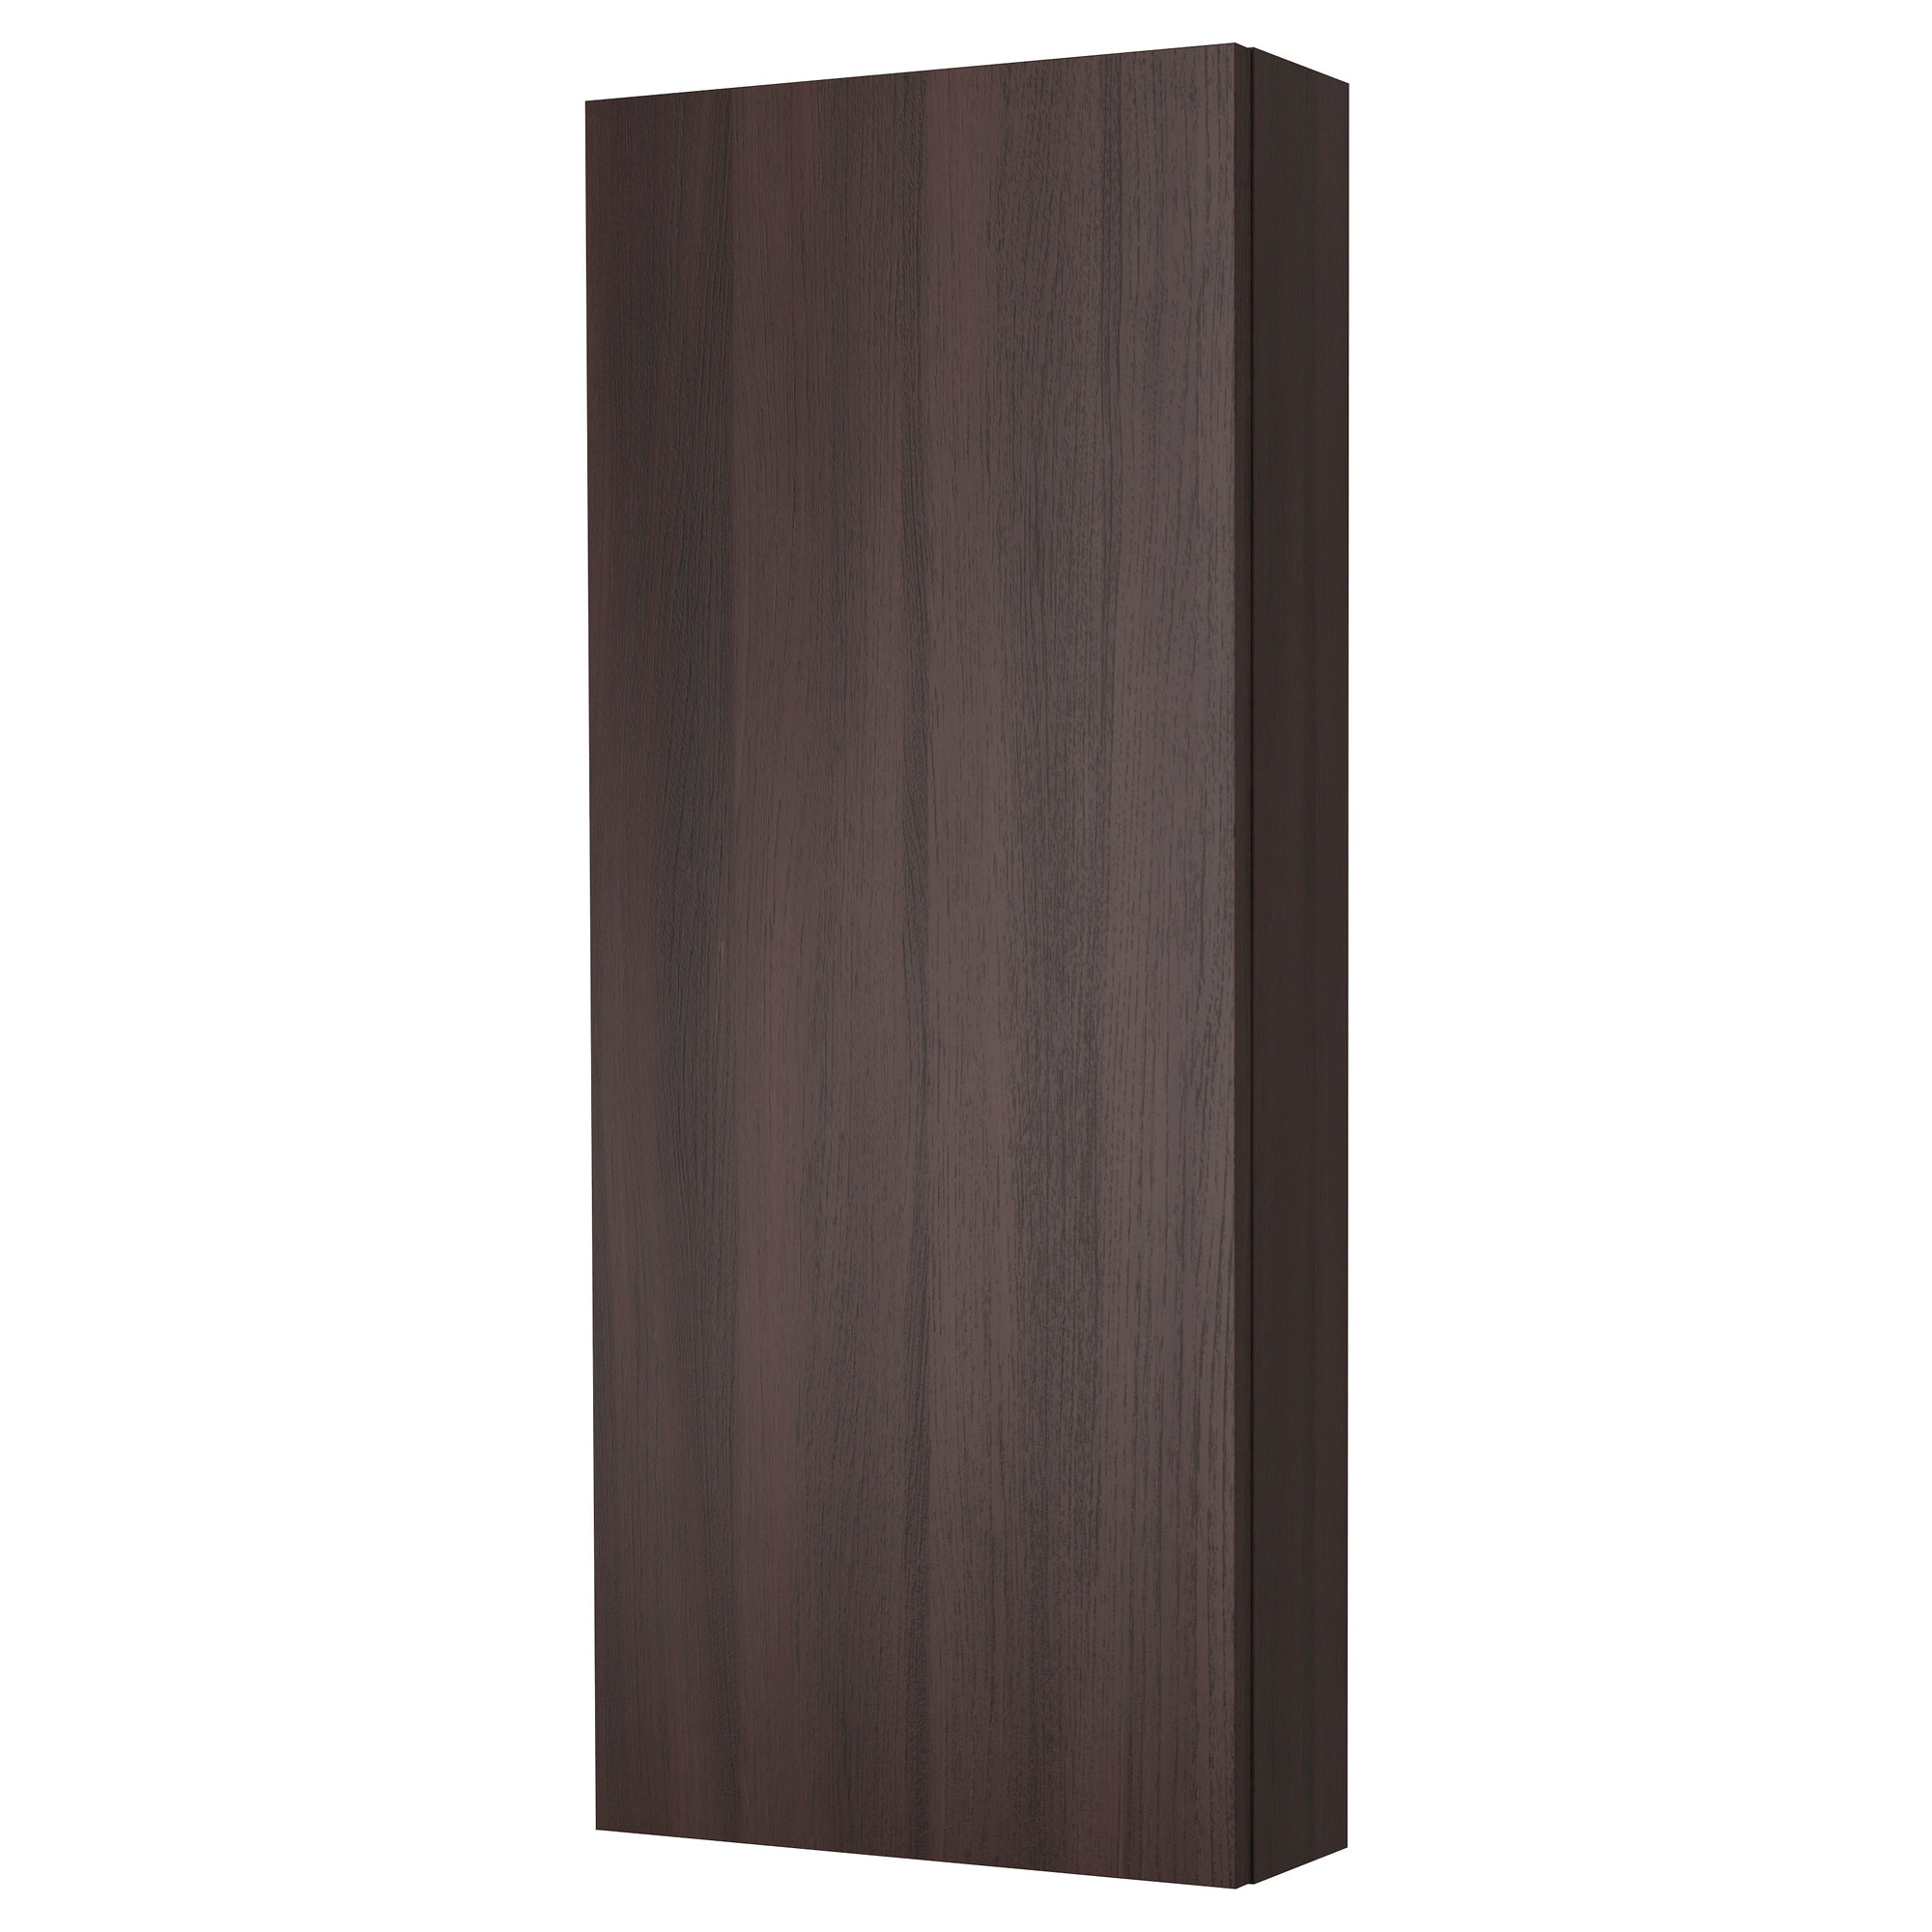 Bathroom wall cabinets ikea - Godmorgon Wall Cabinet With 1 Door Black Brown Black Brown Width 15